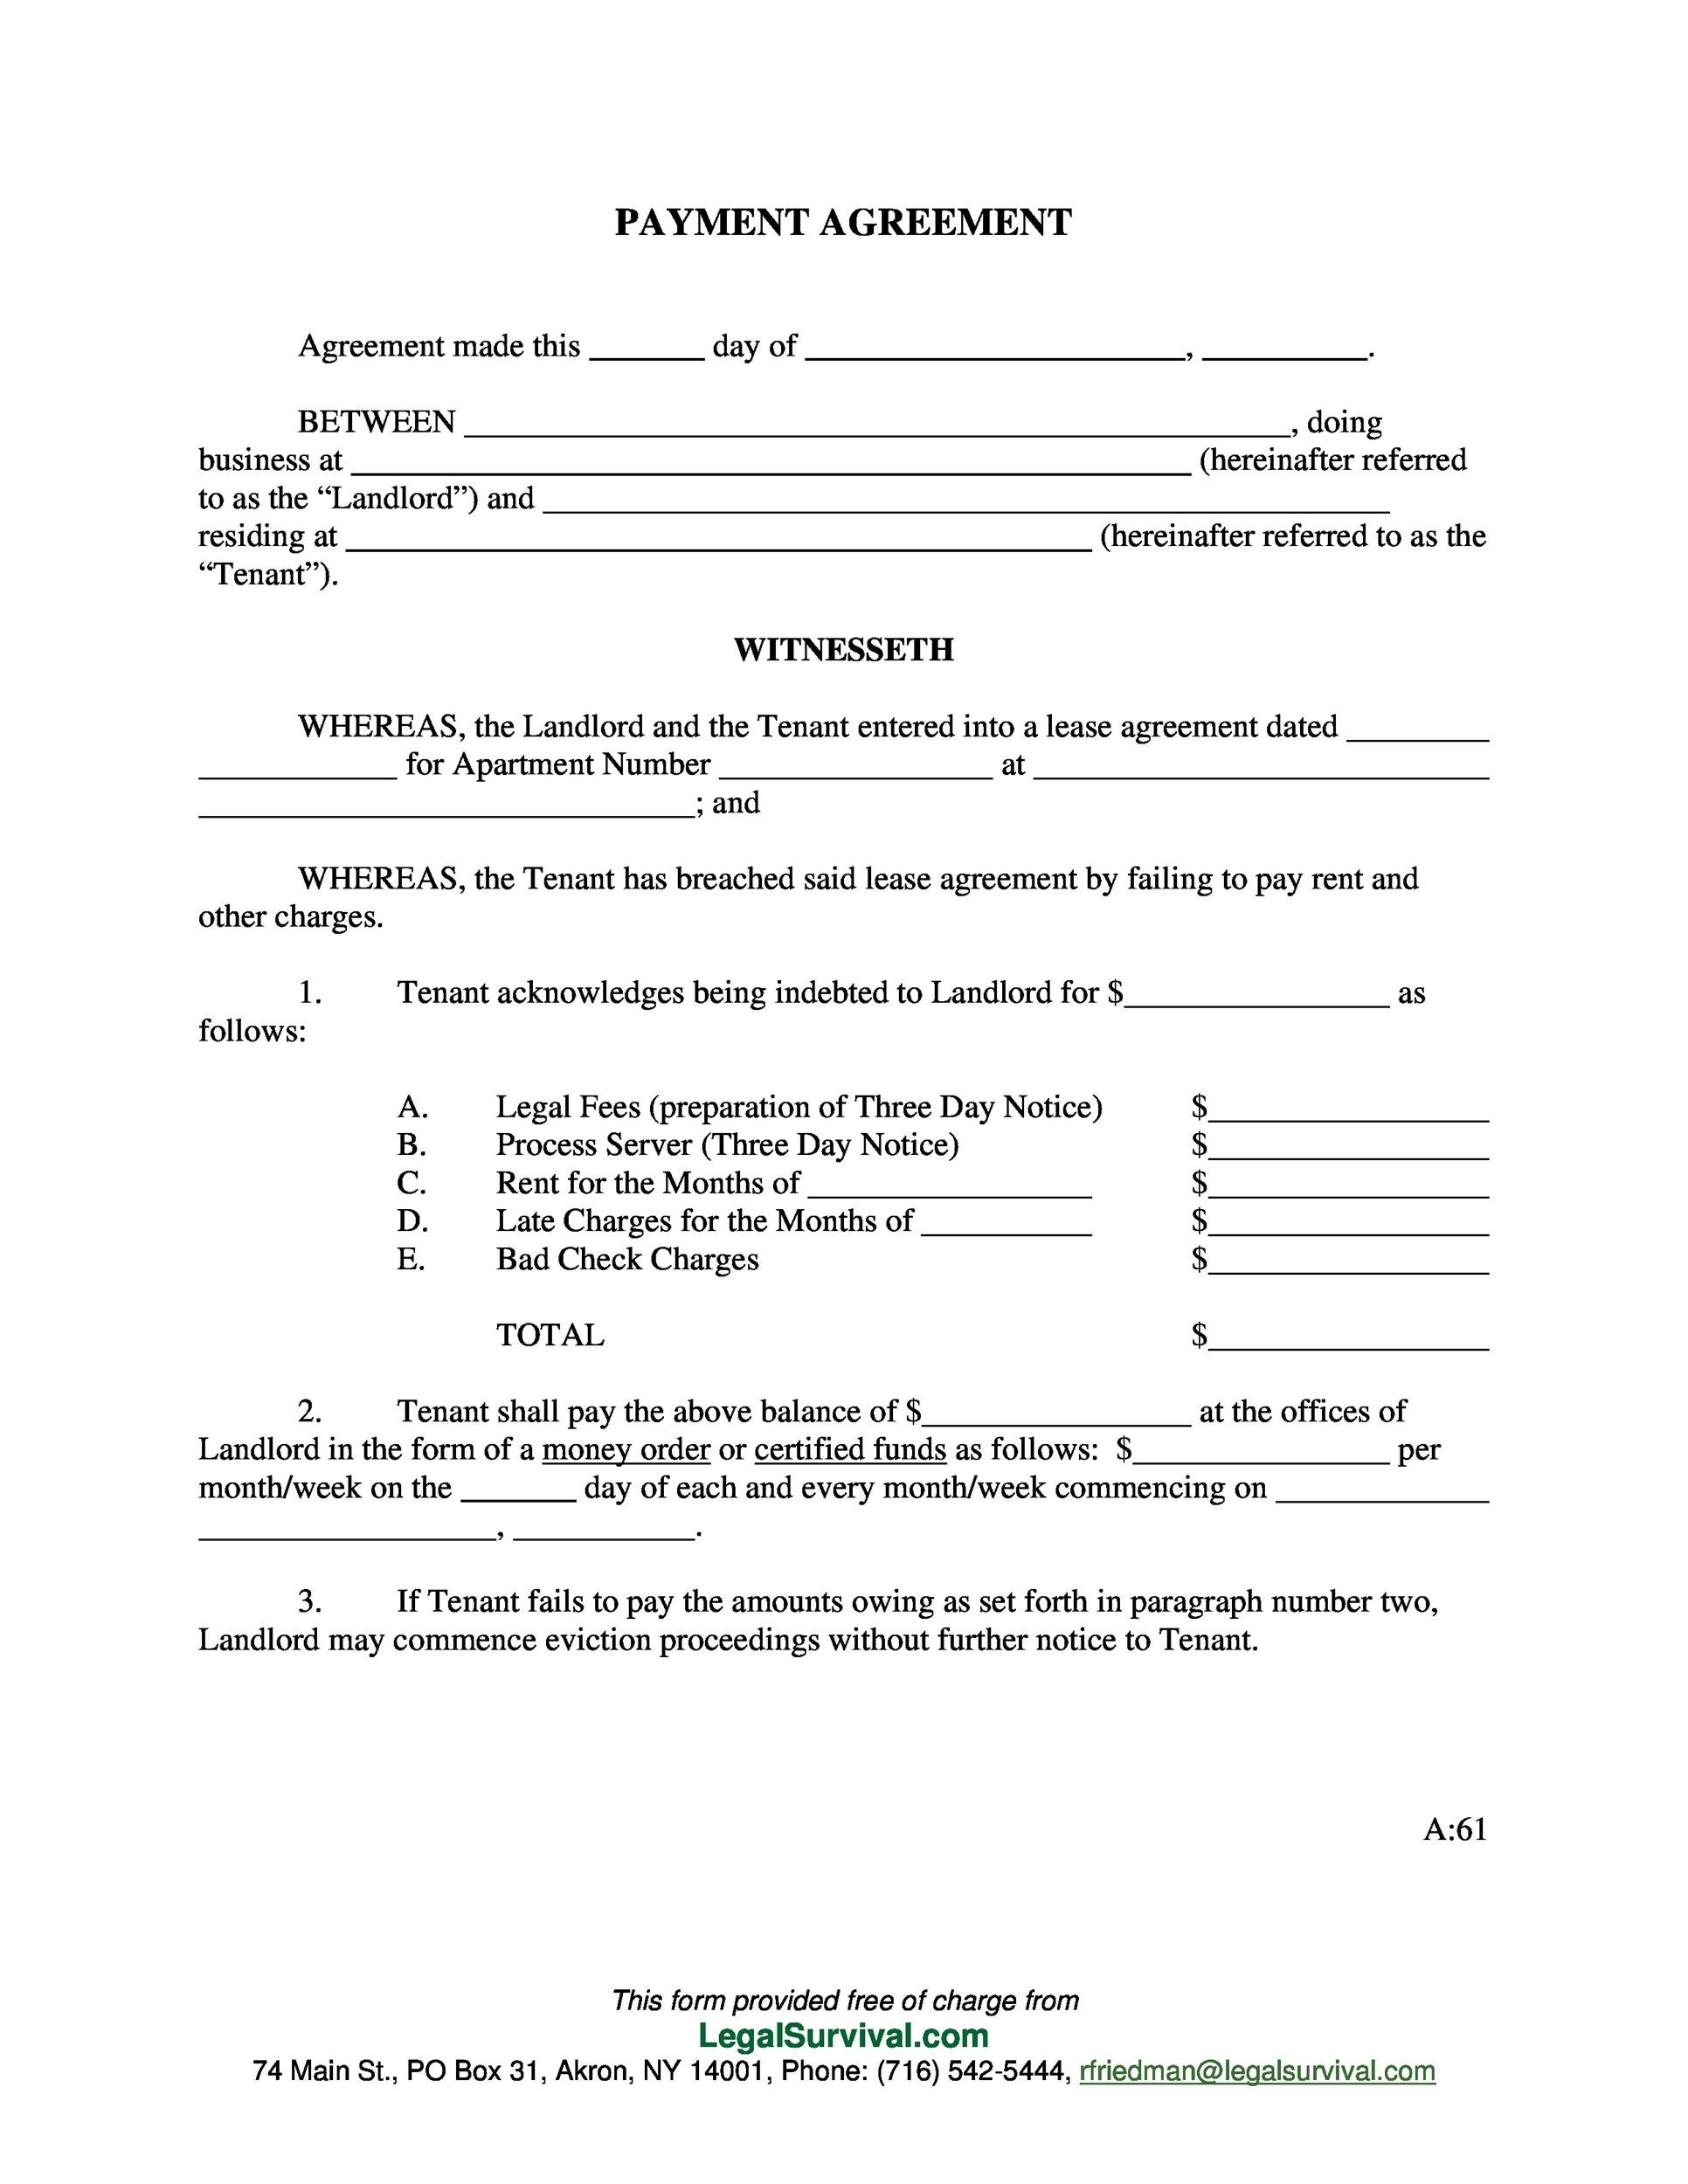 sample of payment agreement Payment Agreement - 40 Templates